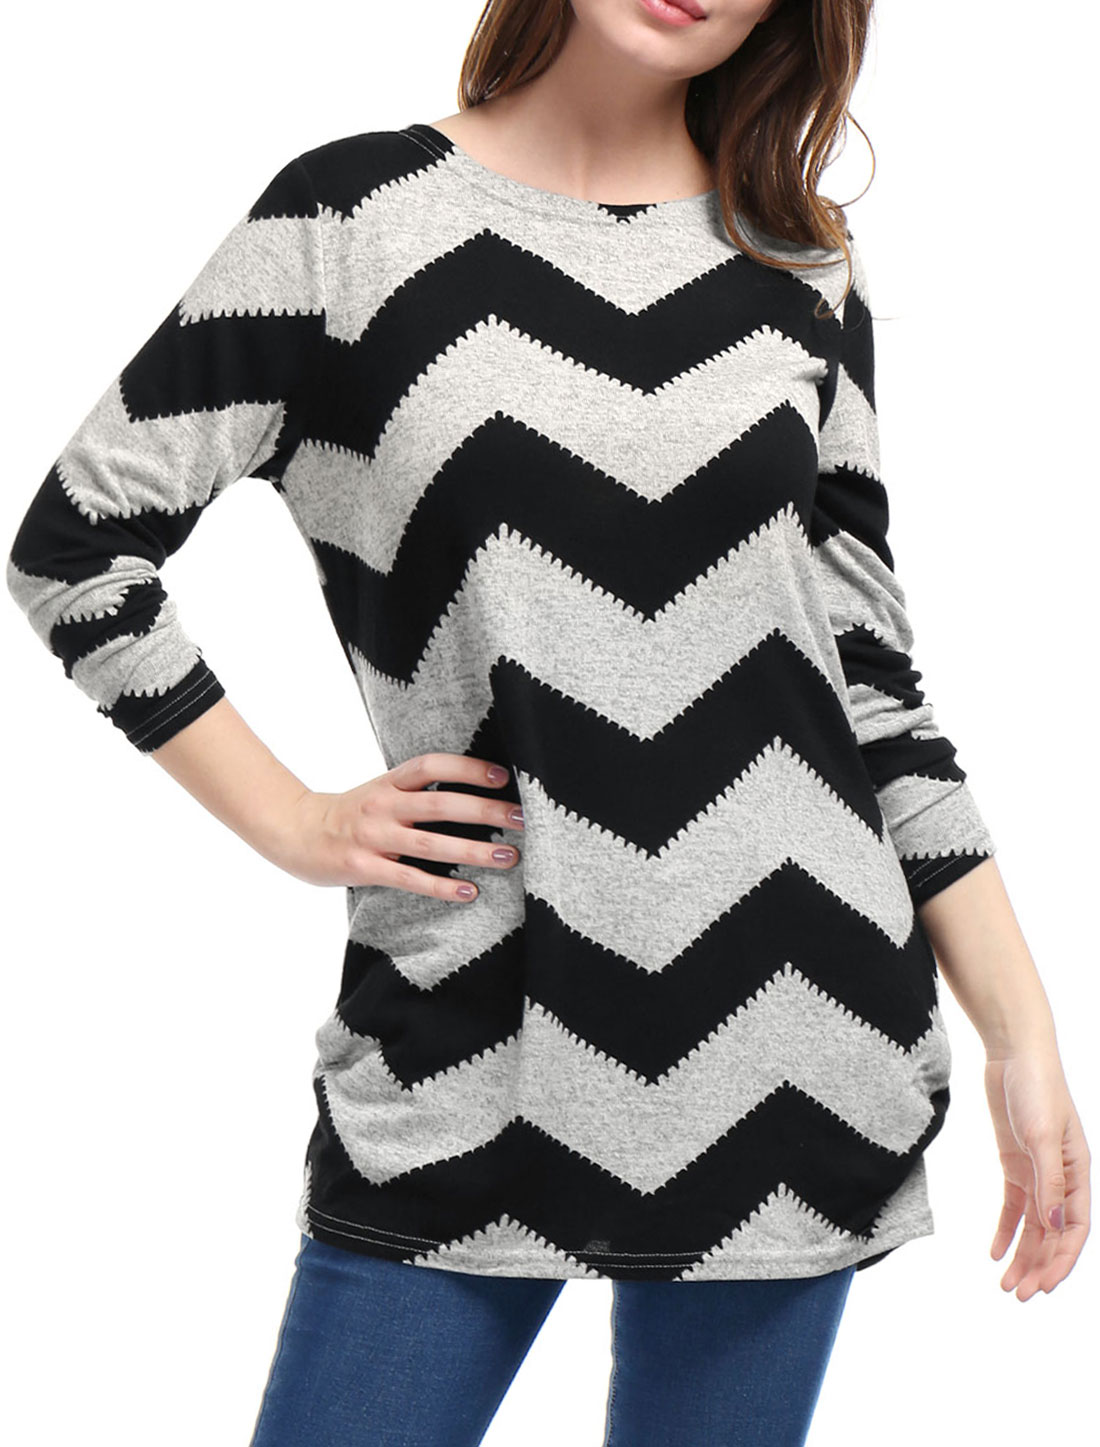 Woman Zig-Zag Pattern Knitted Relax Fit Tunic Top Black Gray XL